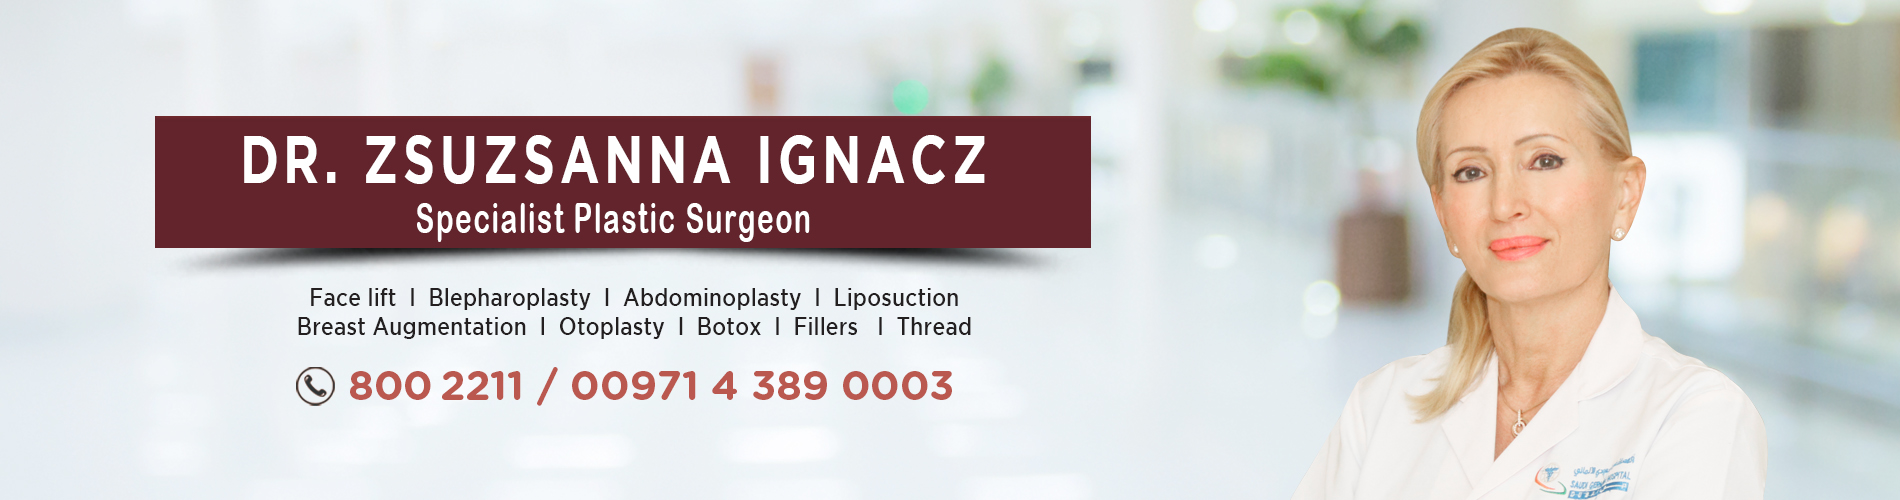 DR. ZSUZSANNA IGNACZ_English